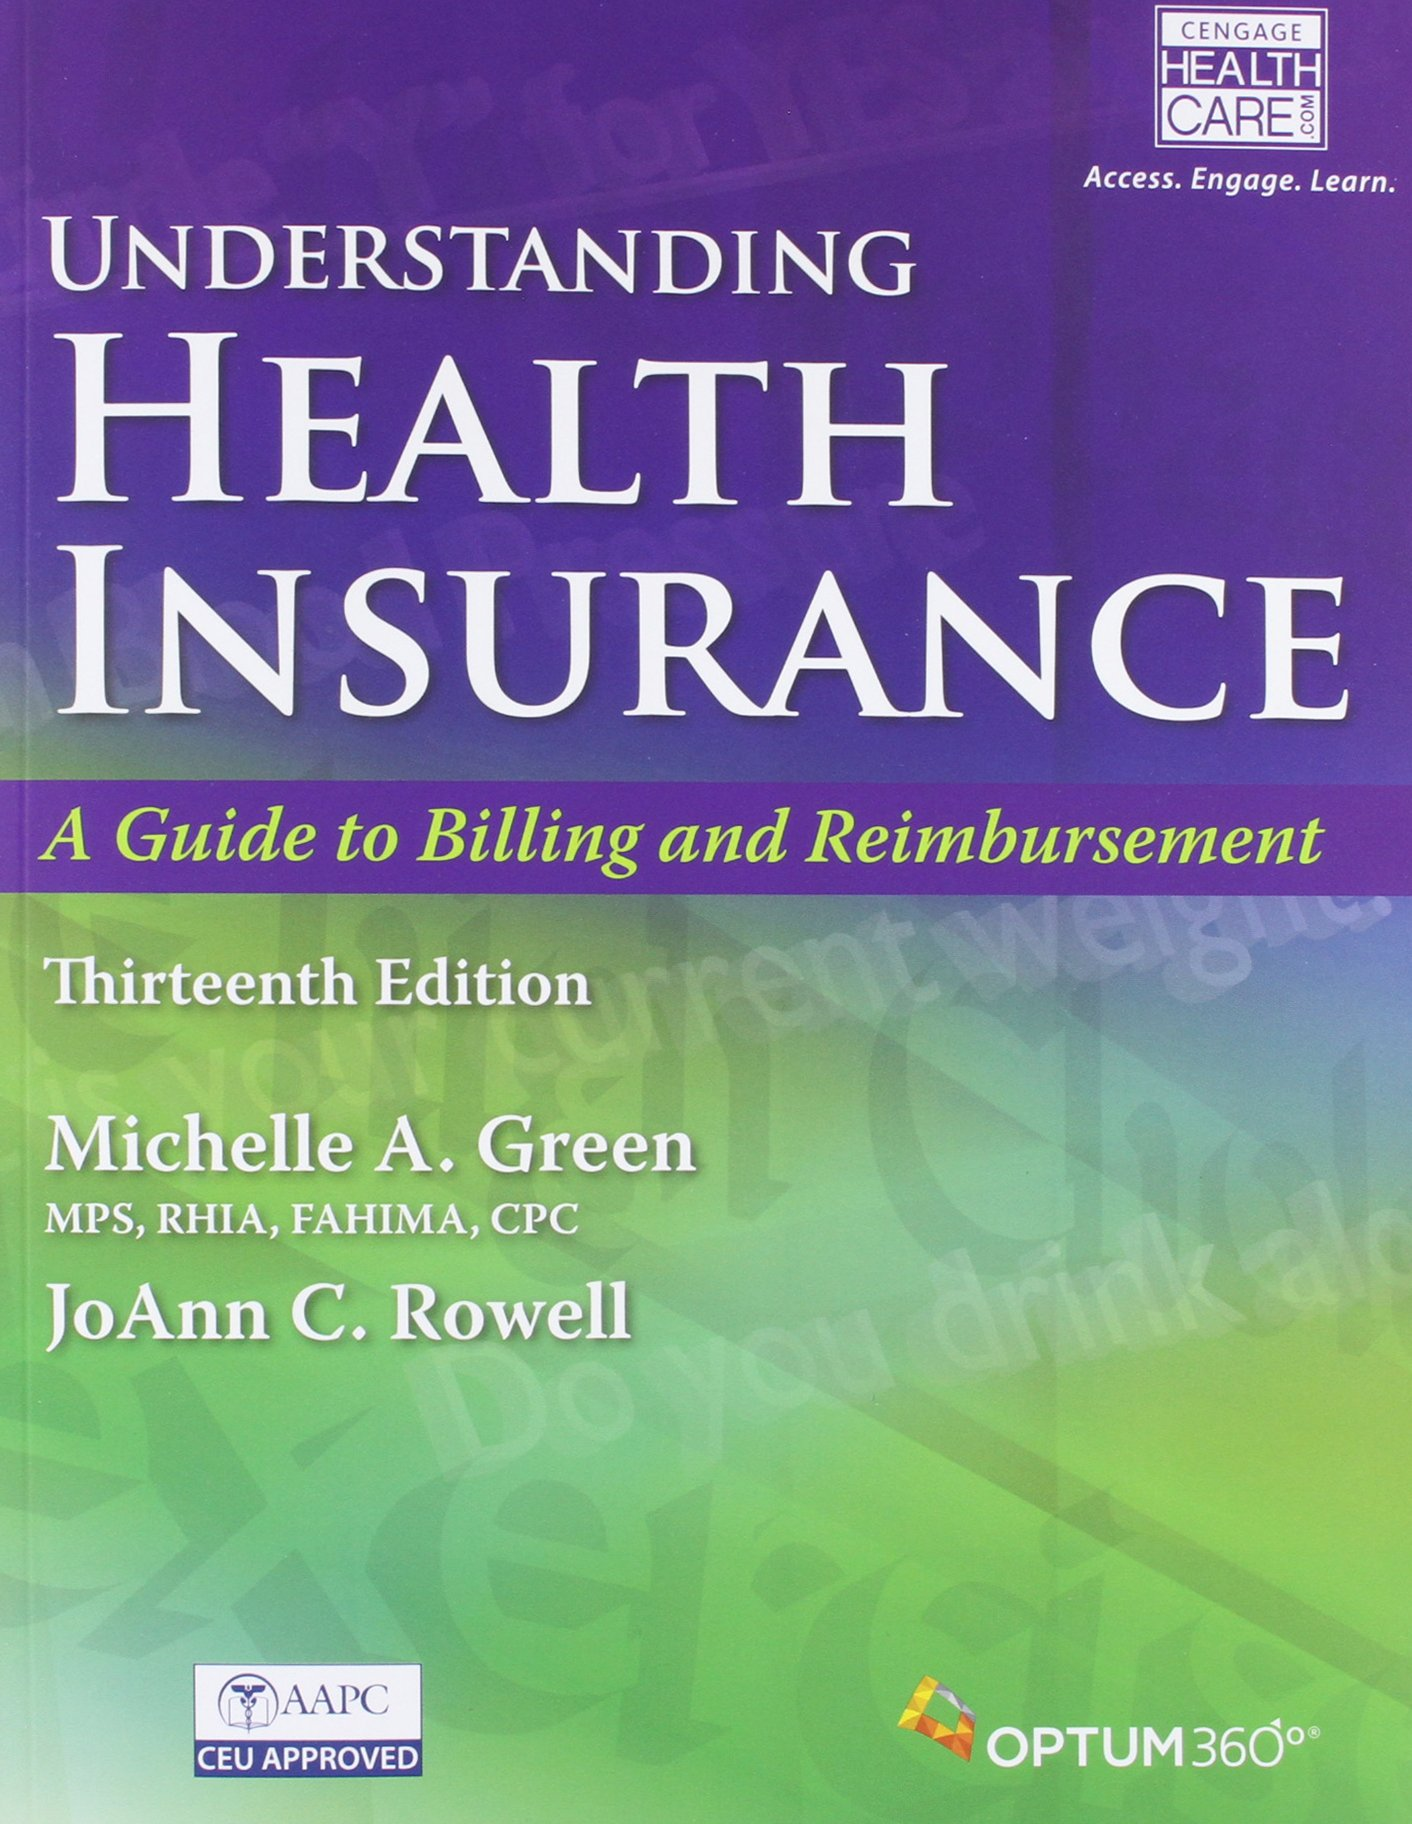 Buy Understanding Health Insurance (Book Only) Book Online at Low Prices in  India | Understanding Health Insurance (Book Only) Reviews & Ratings -  Amazon.in